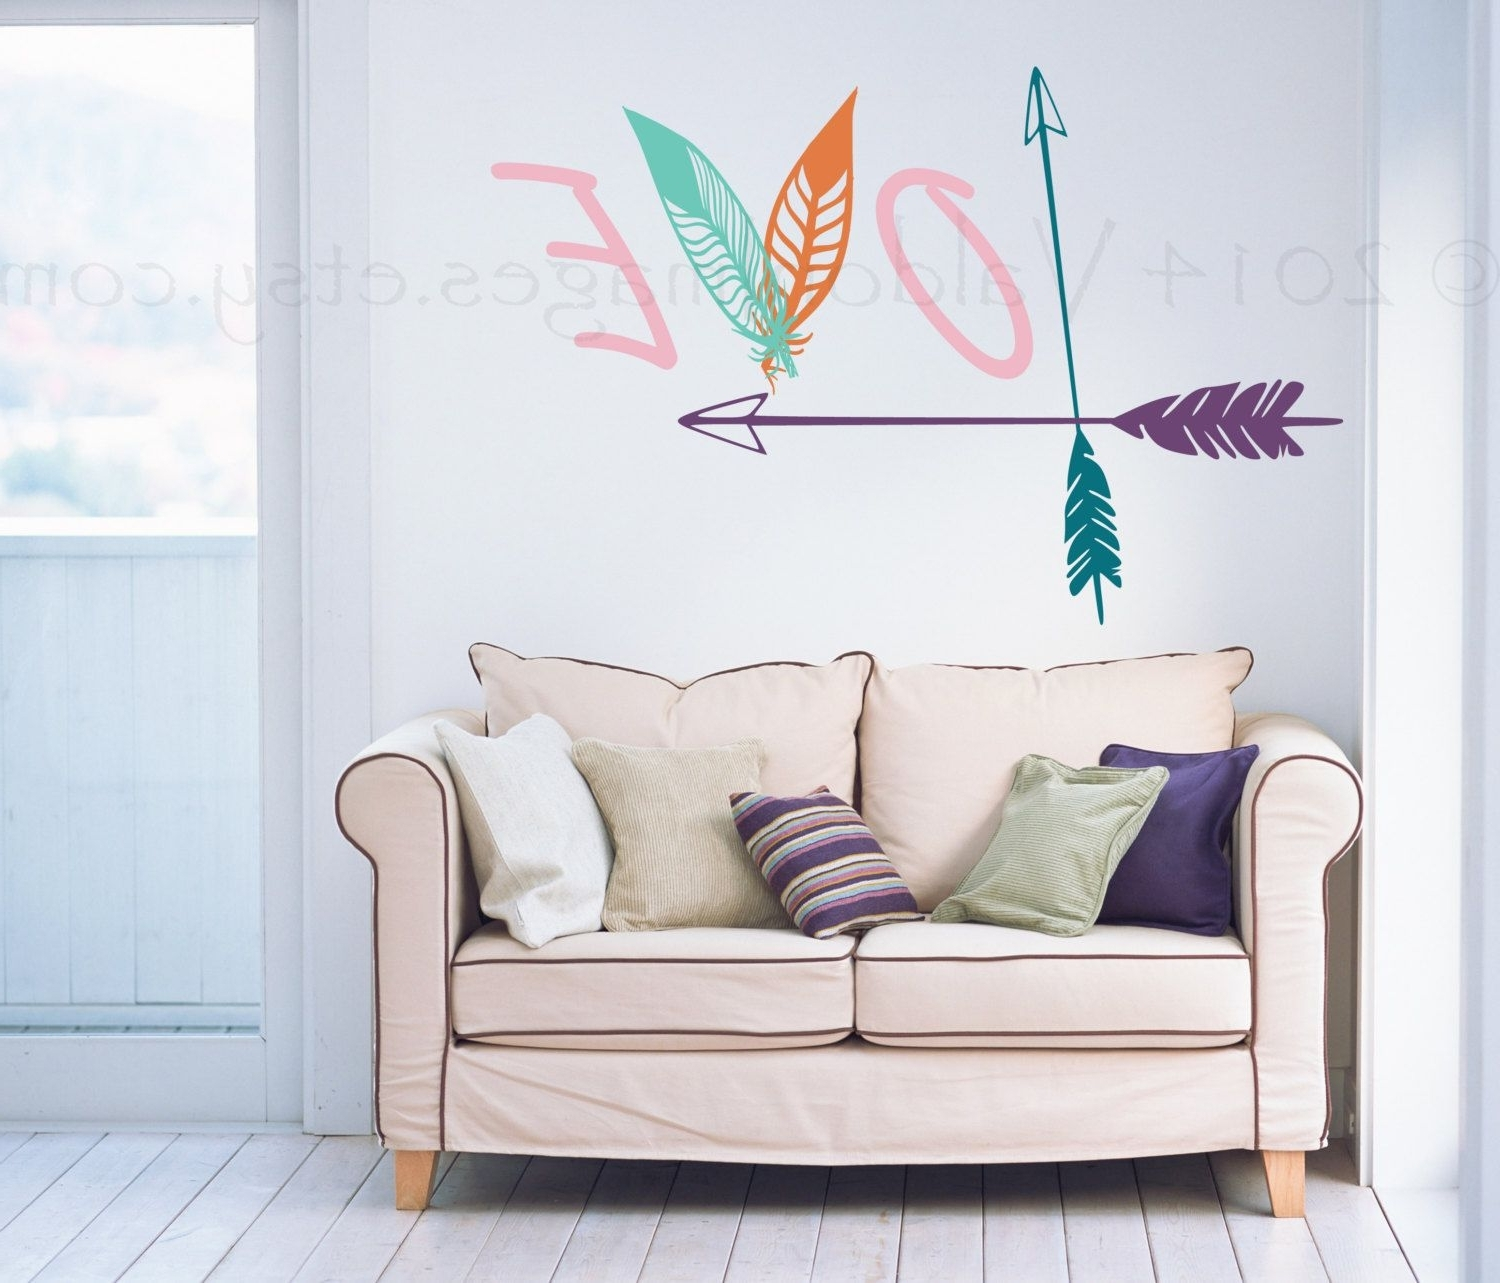 Apartment Furniture Intended For Bohemian Wall Art (View 6 of 15)